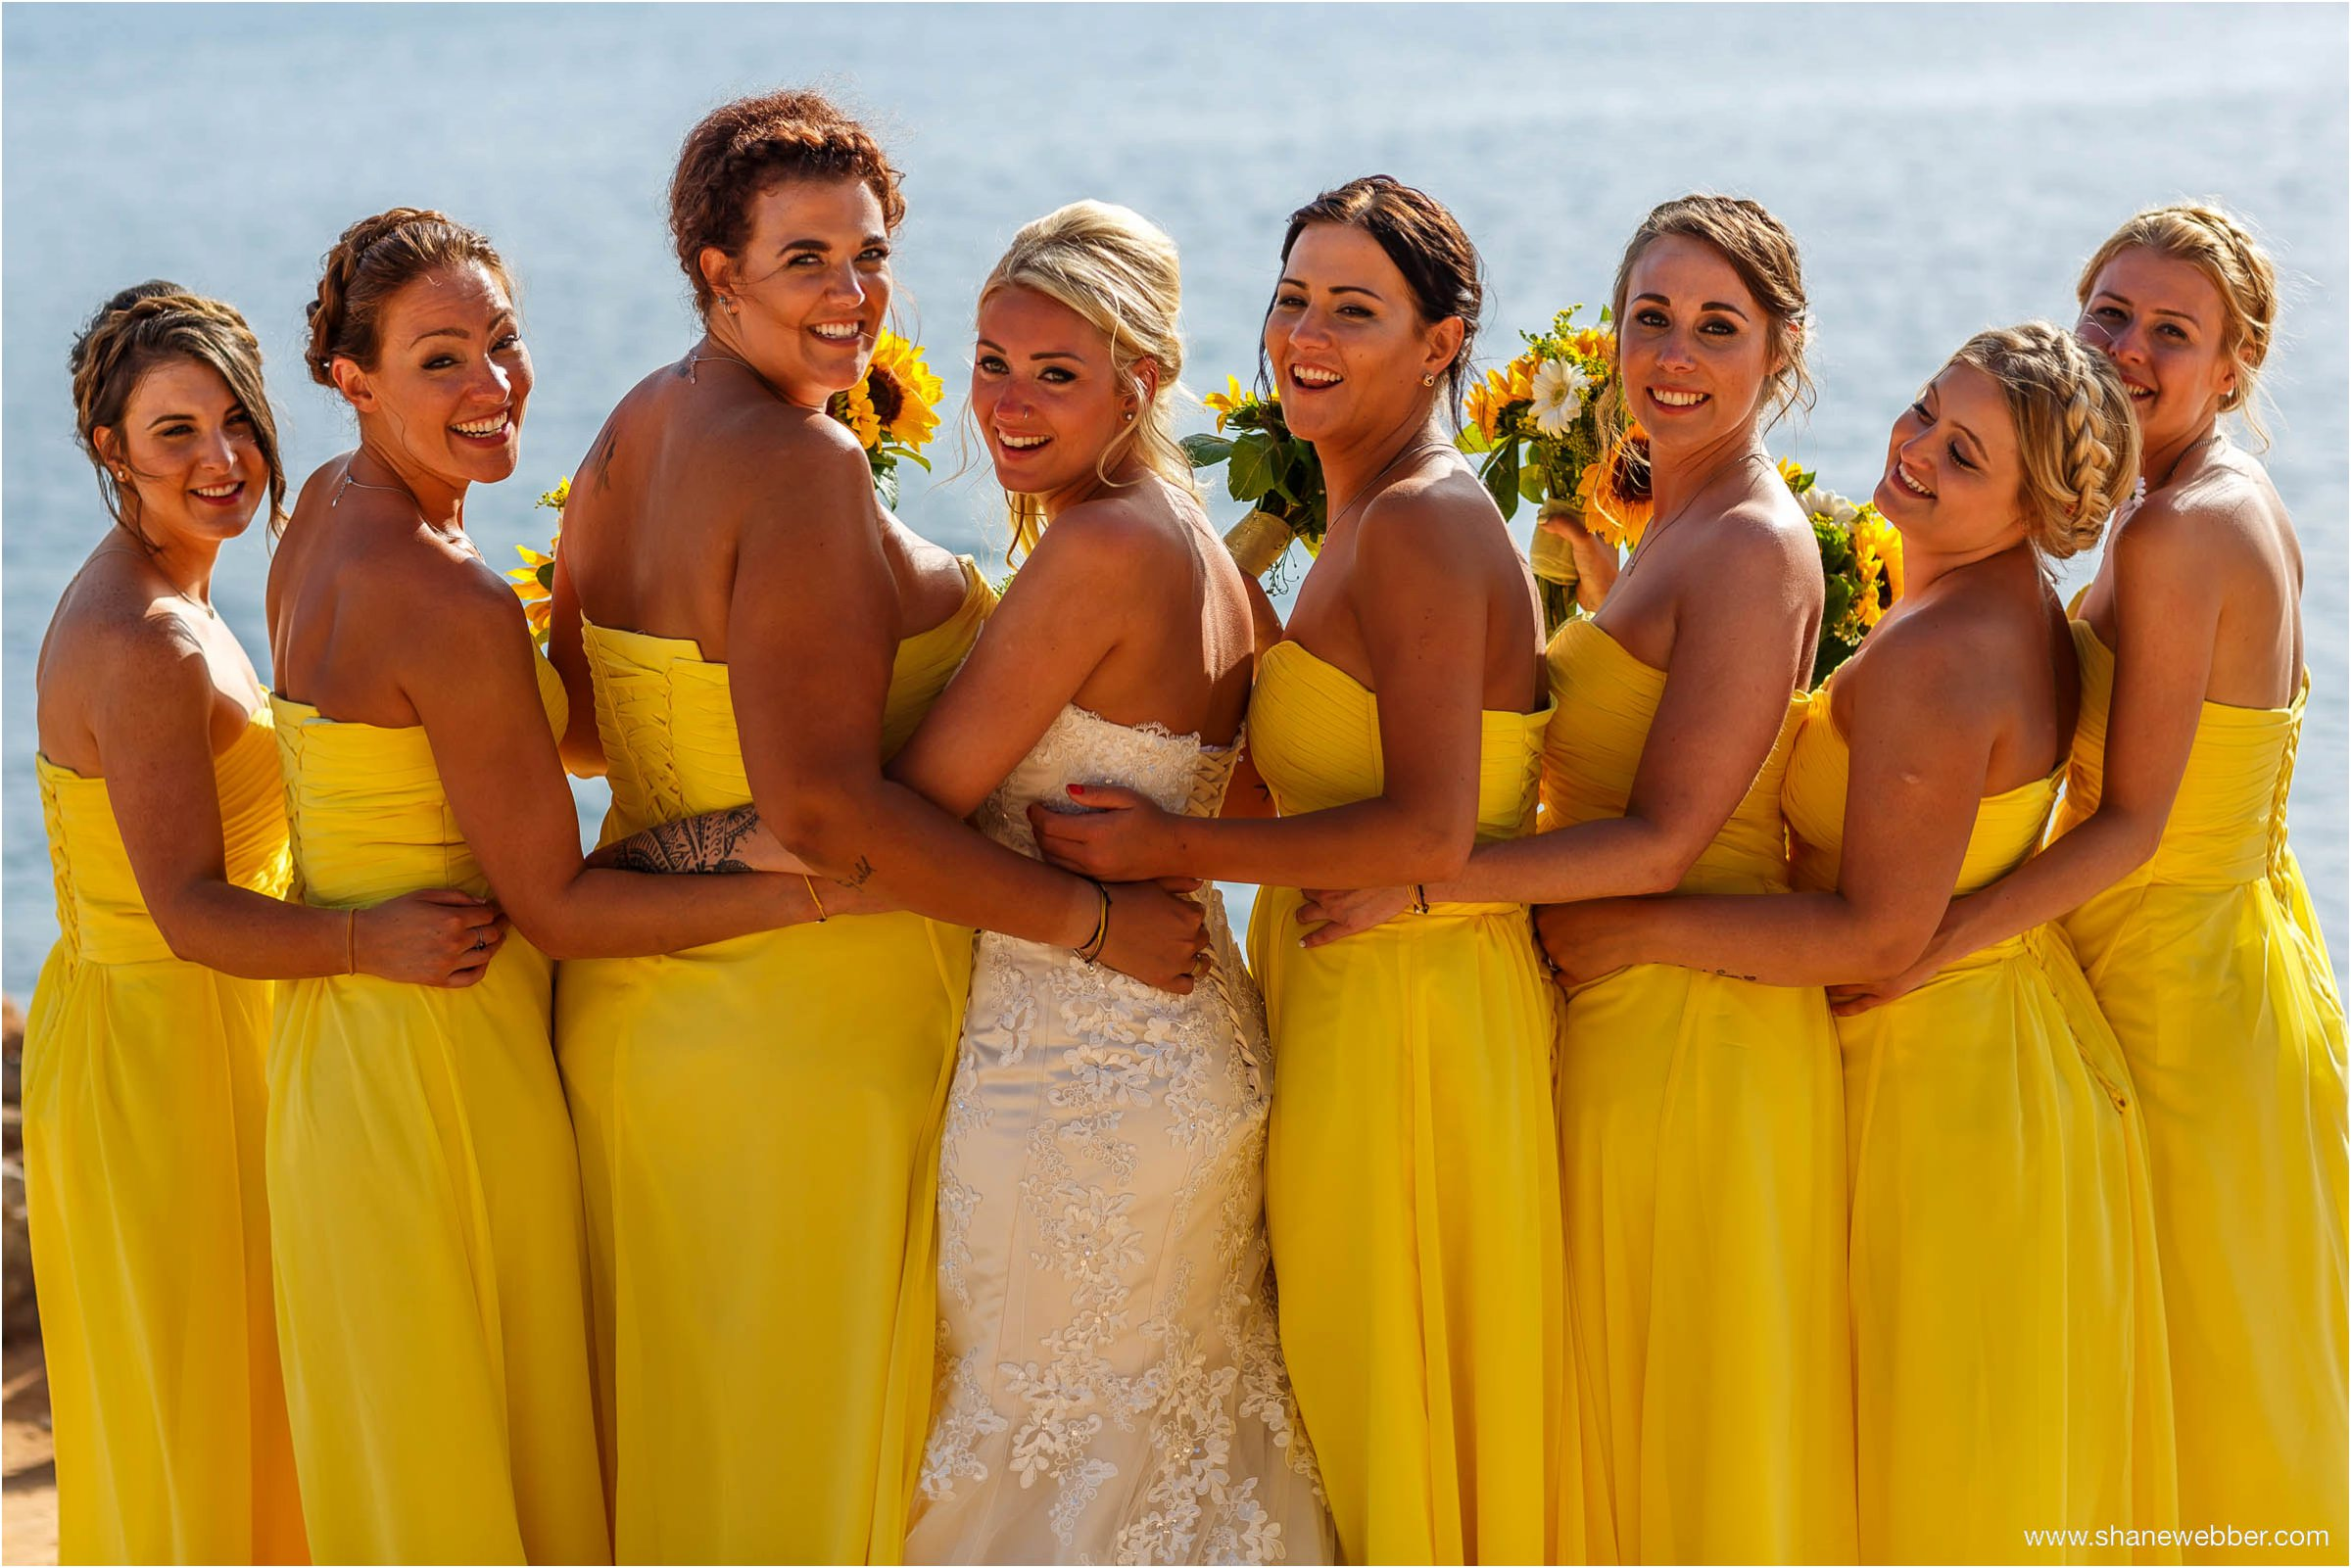 Bridesmaids in bright yellow dresses